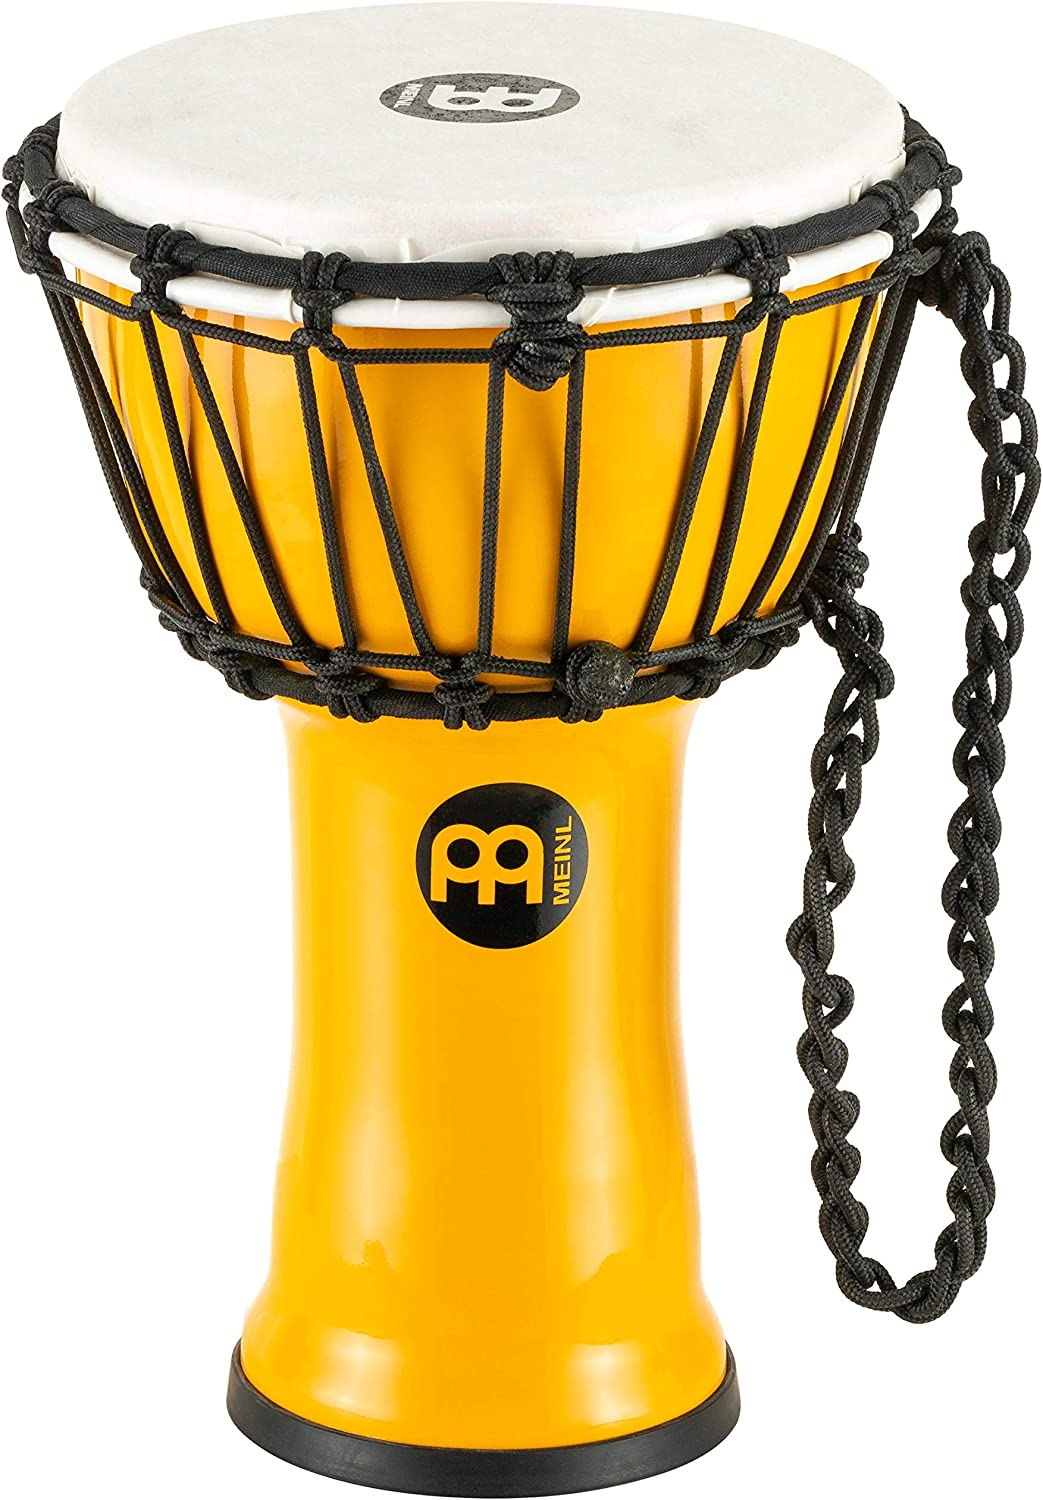 Meinl online shopping Percussion Junior Djembe with Synthetic Head-NOT Max 62% OFF Shell and